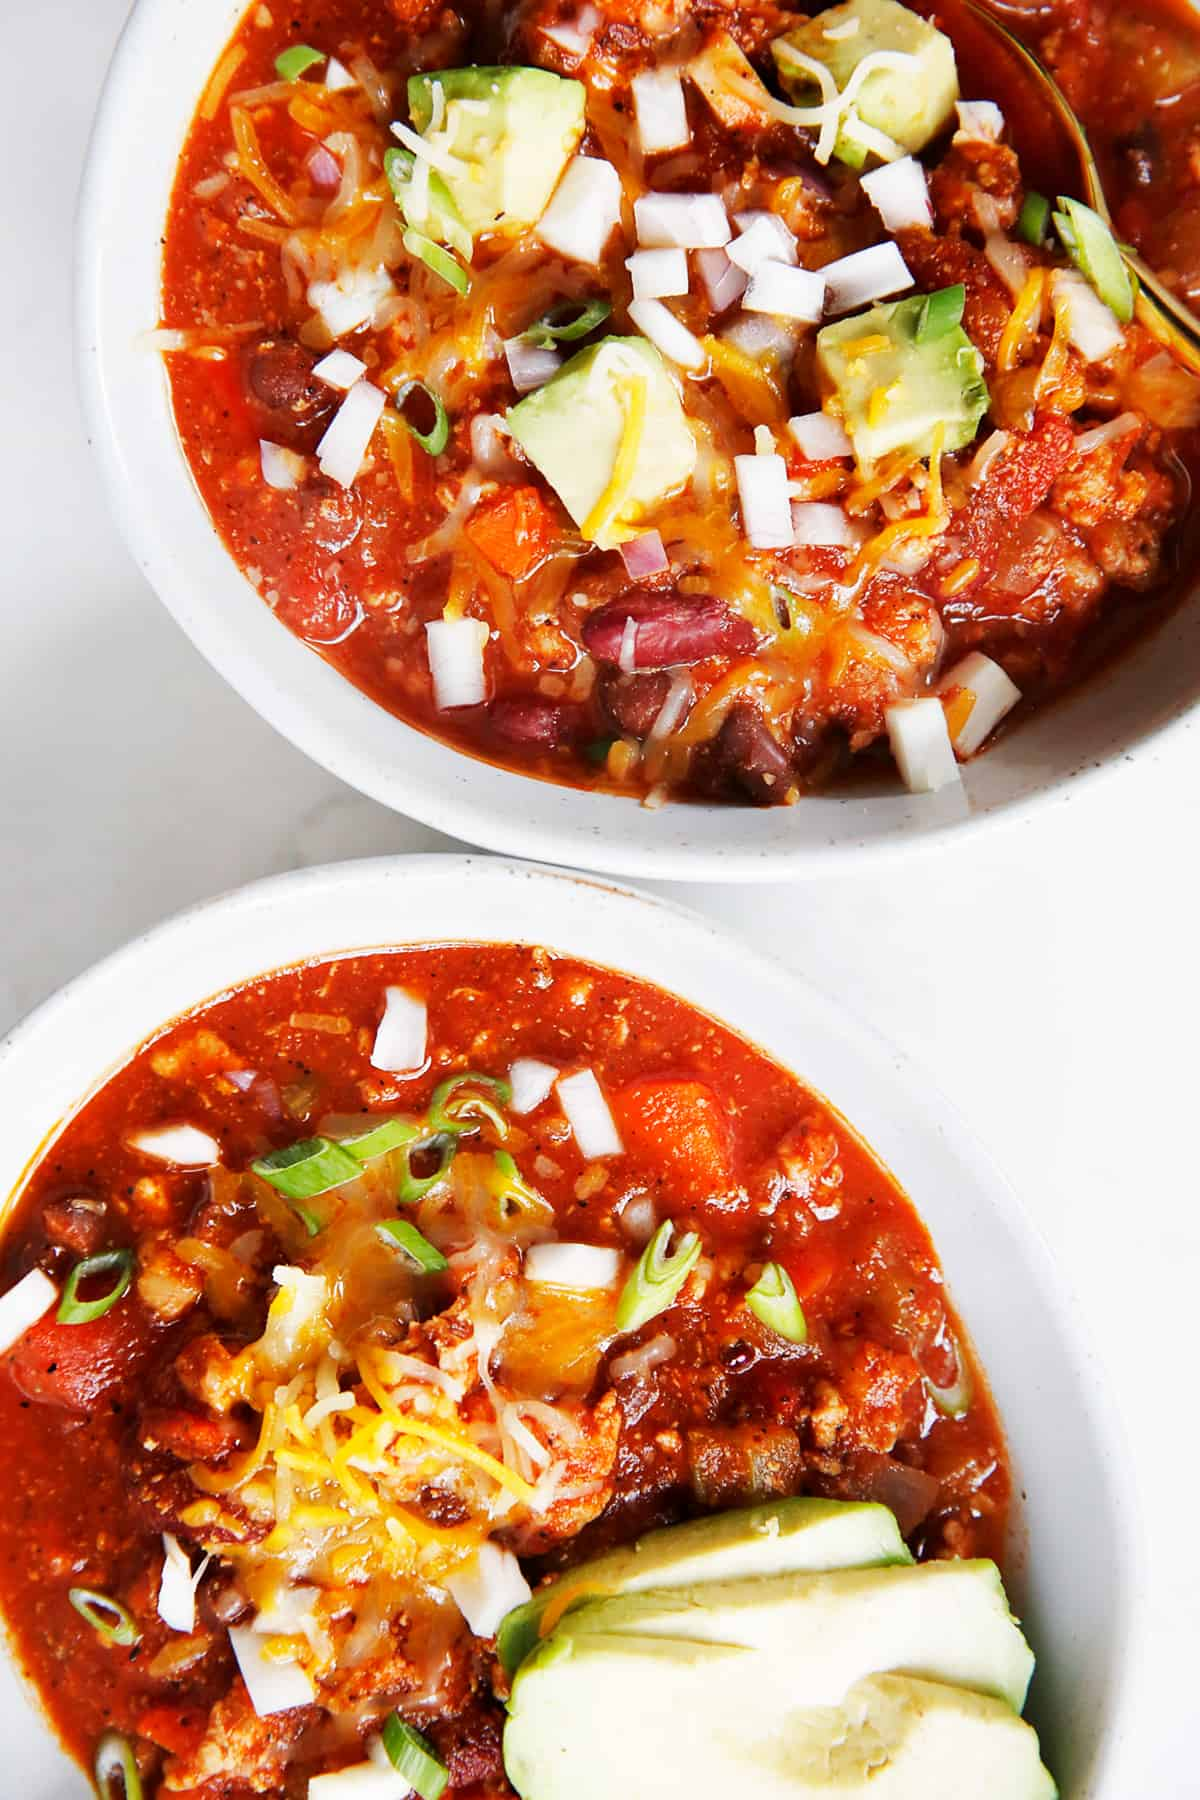 Two servings of ground turkey chili in bowls.